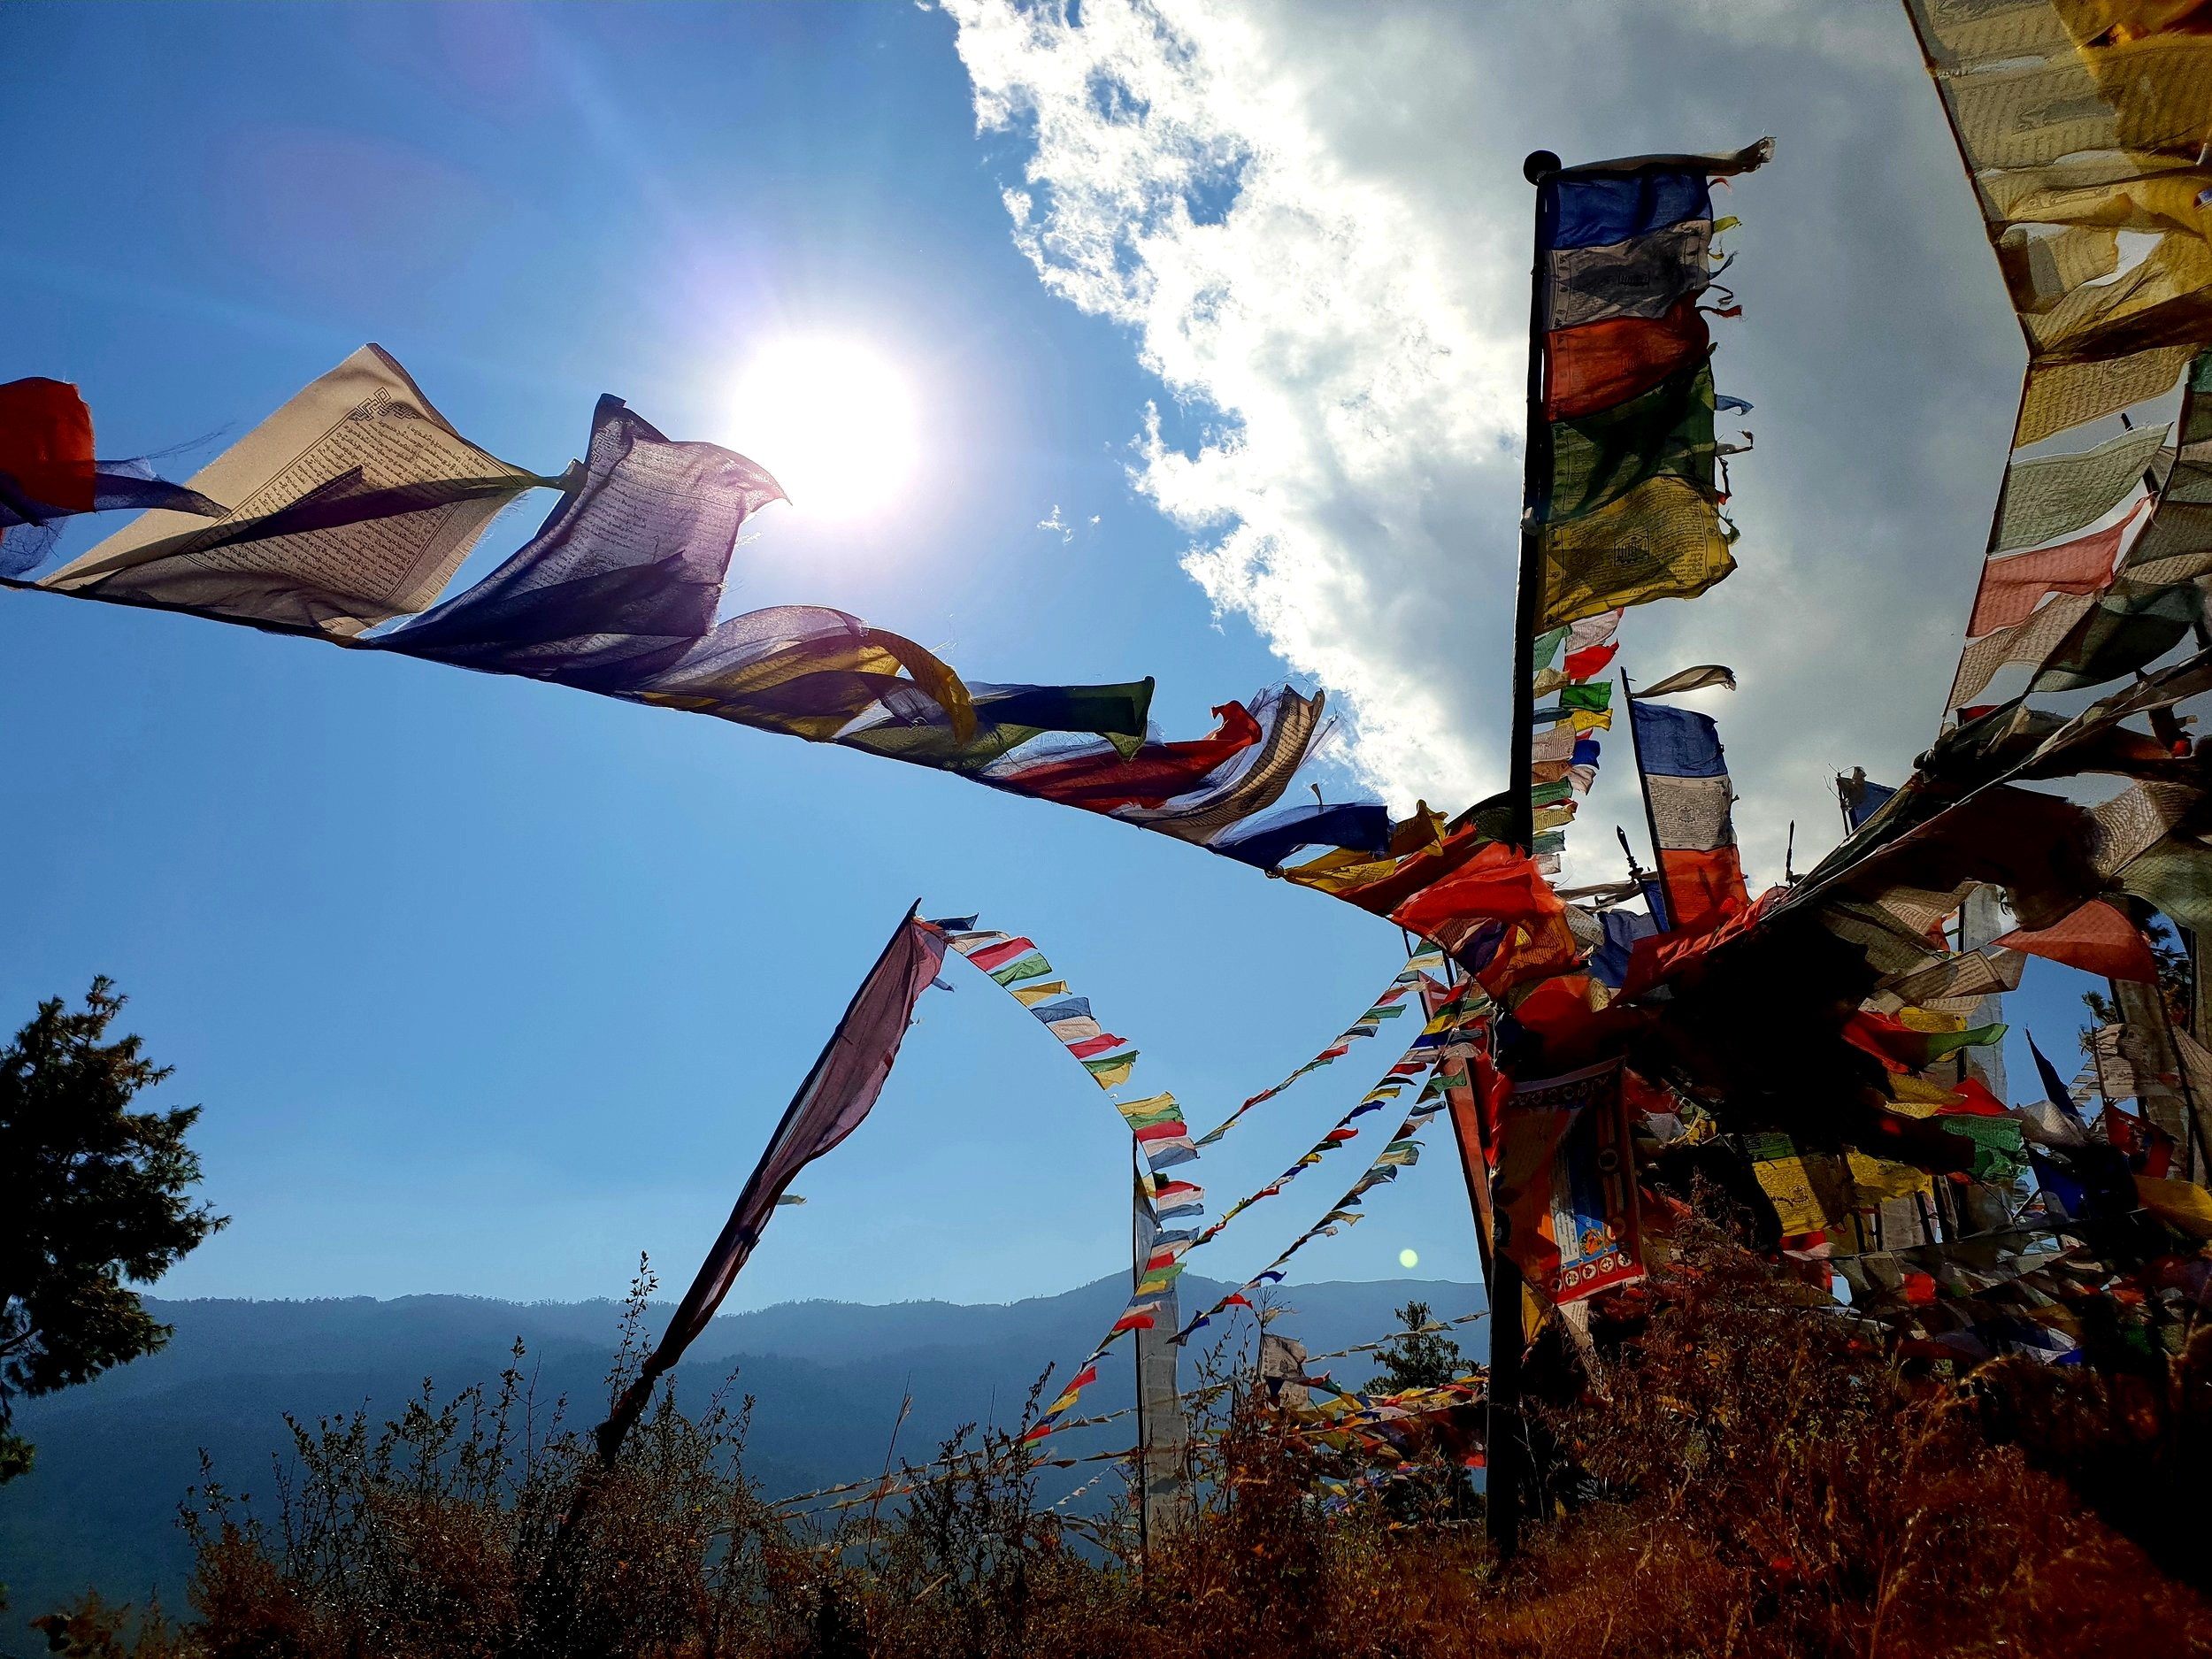 Prayer flags are a common sight all over the hills of Bhutan. A bit like a better version of bunting (strange word).